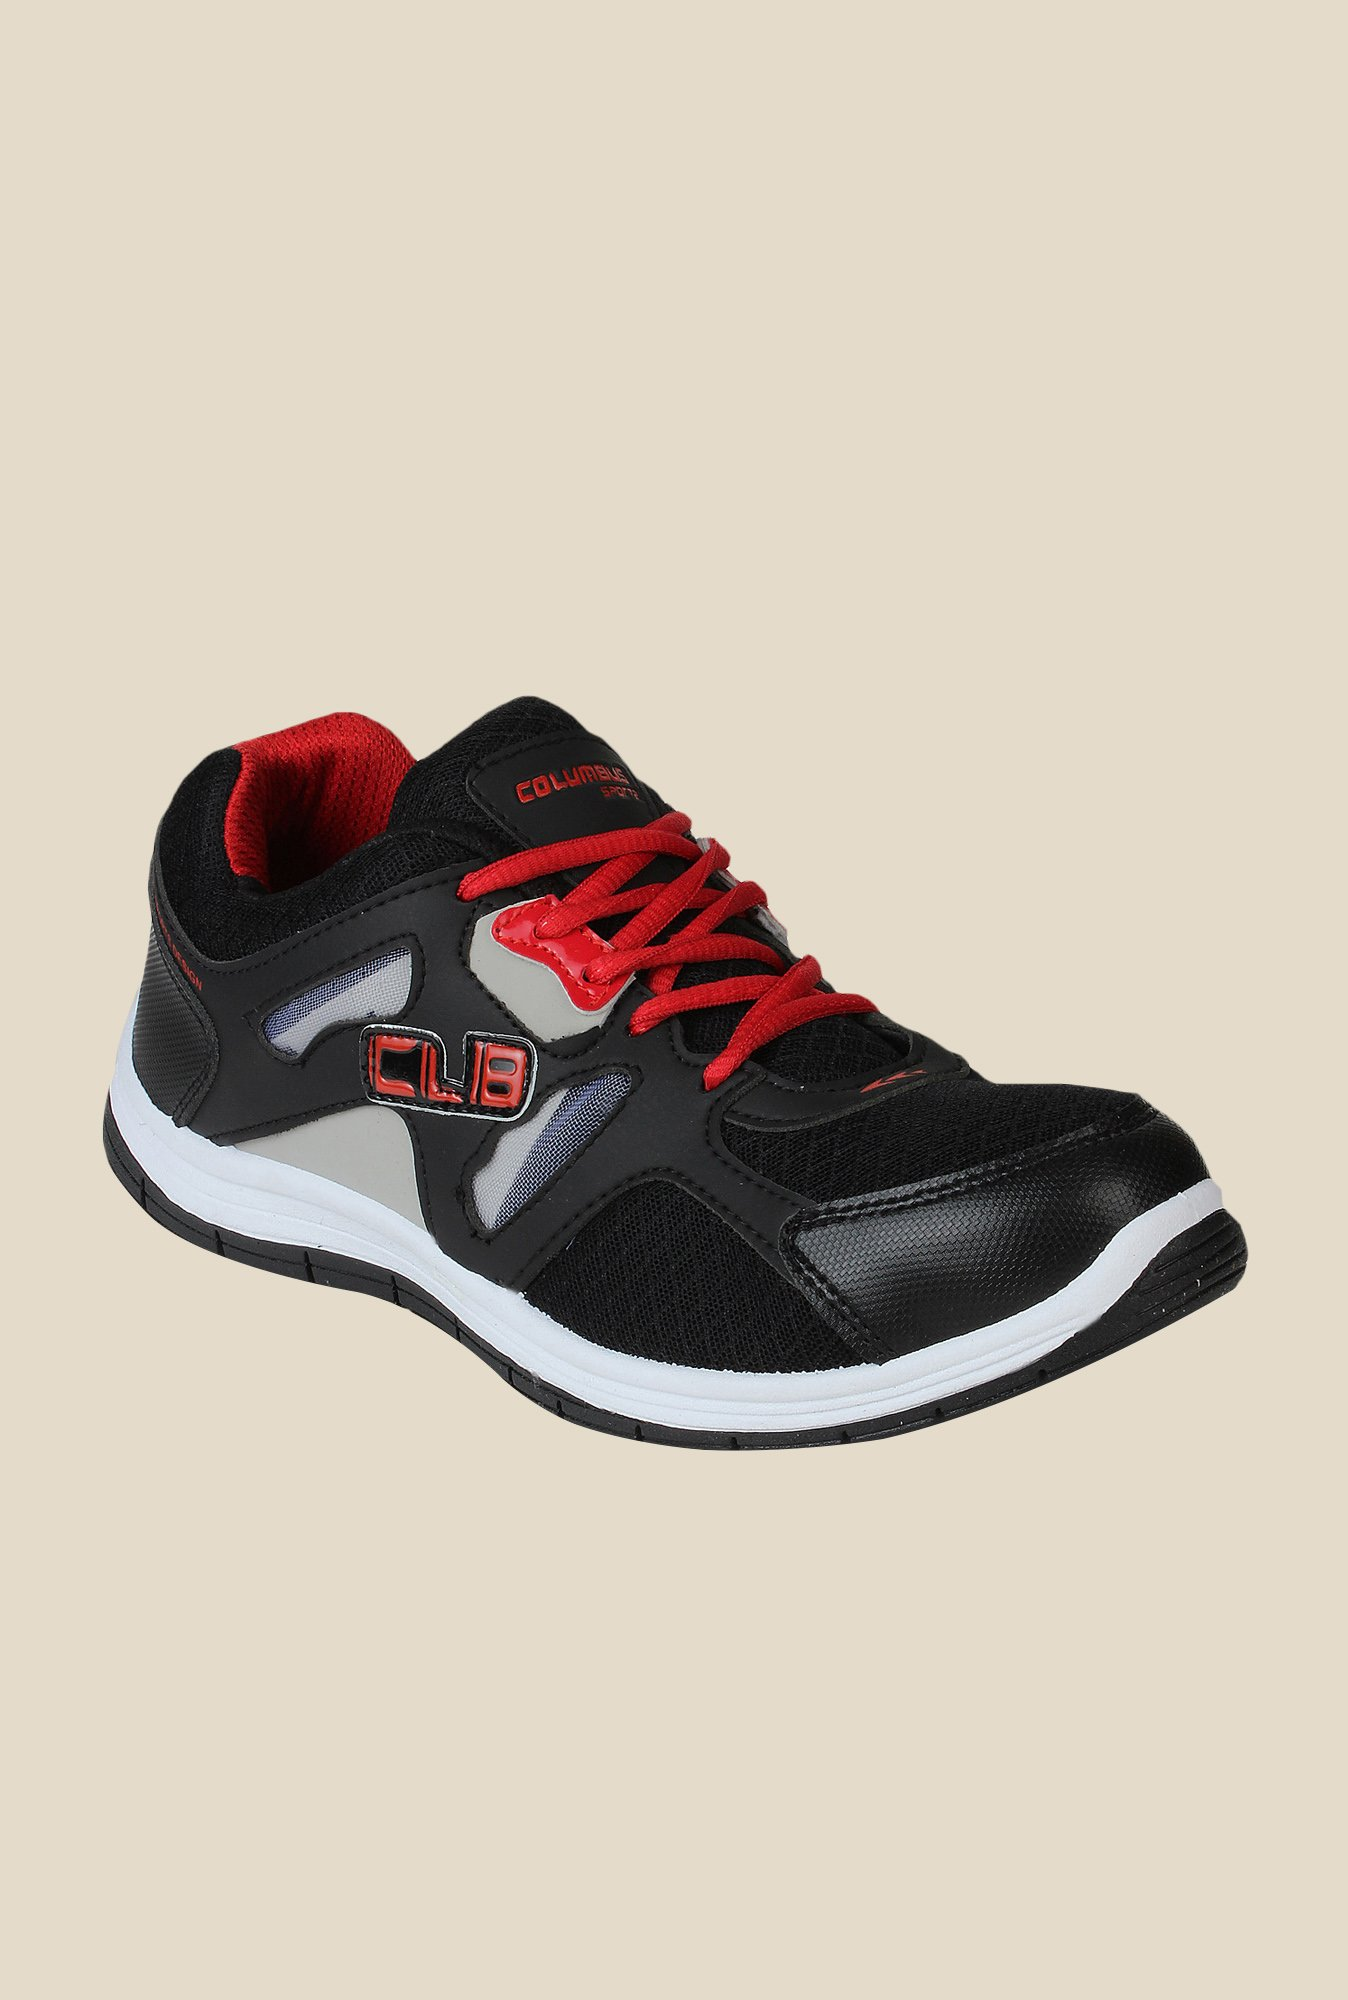 Columbus FM-4 Black & Red Running Shoes